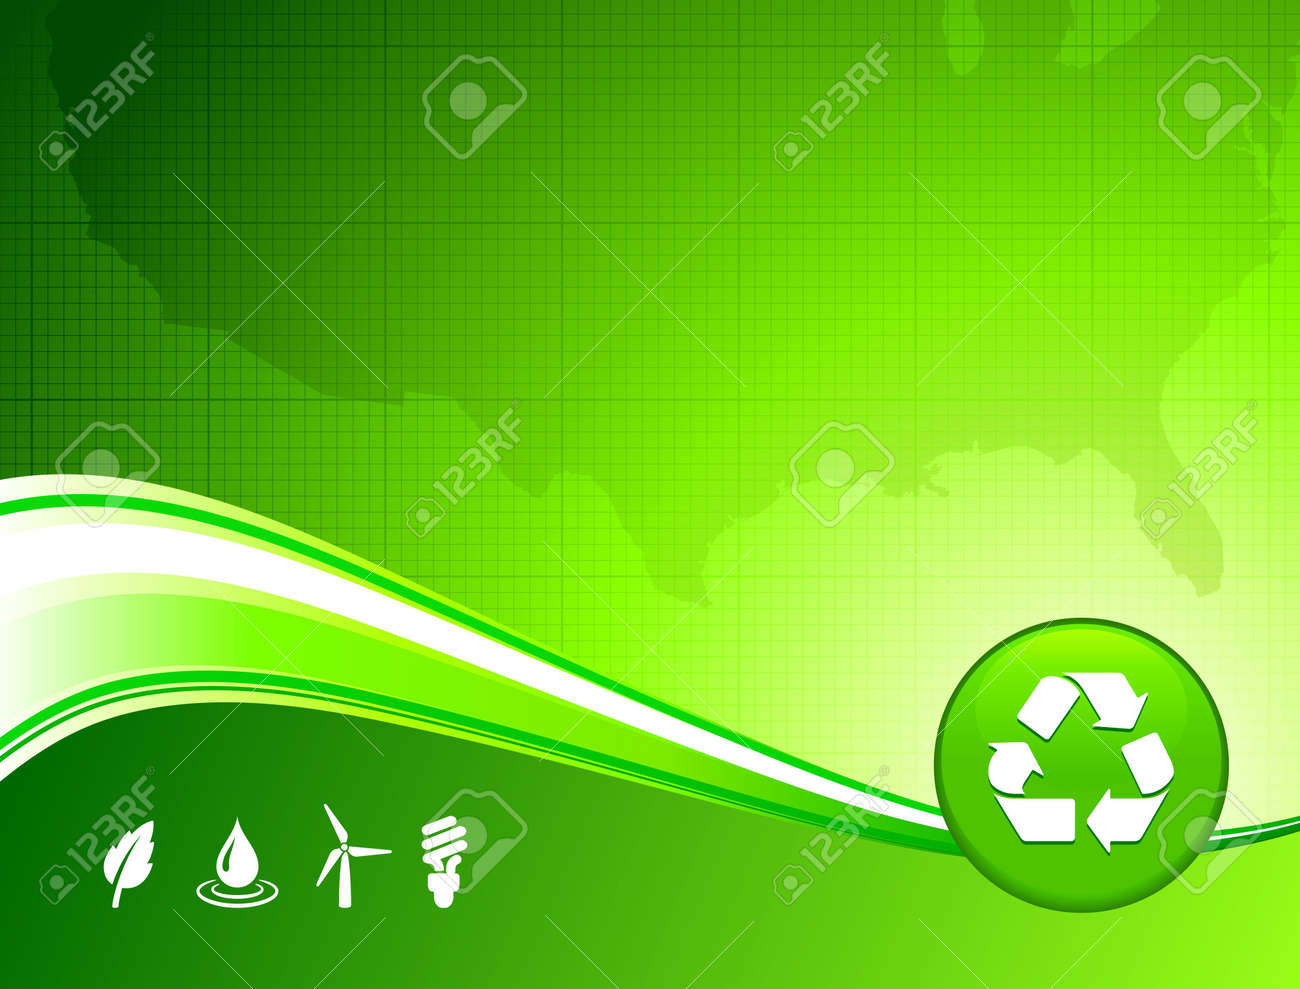 Original Illustration: green environment US map background AI8 compatible Stock Illustration - 6426293